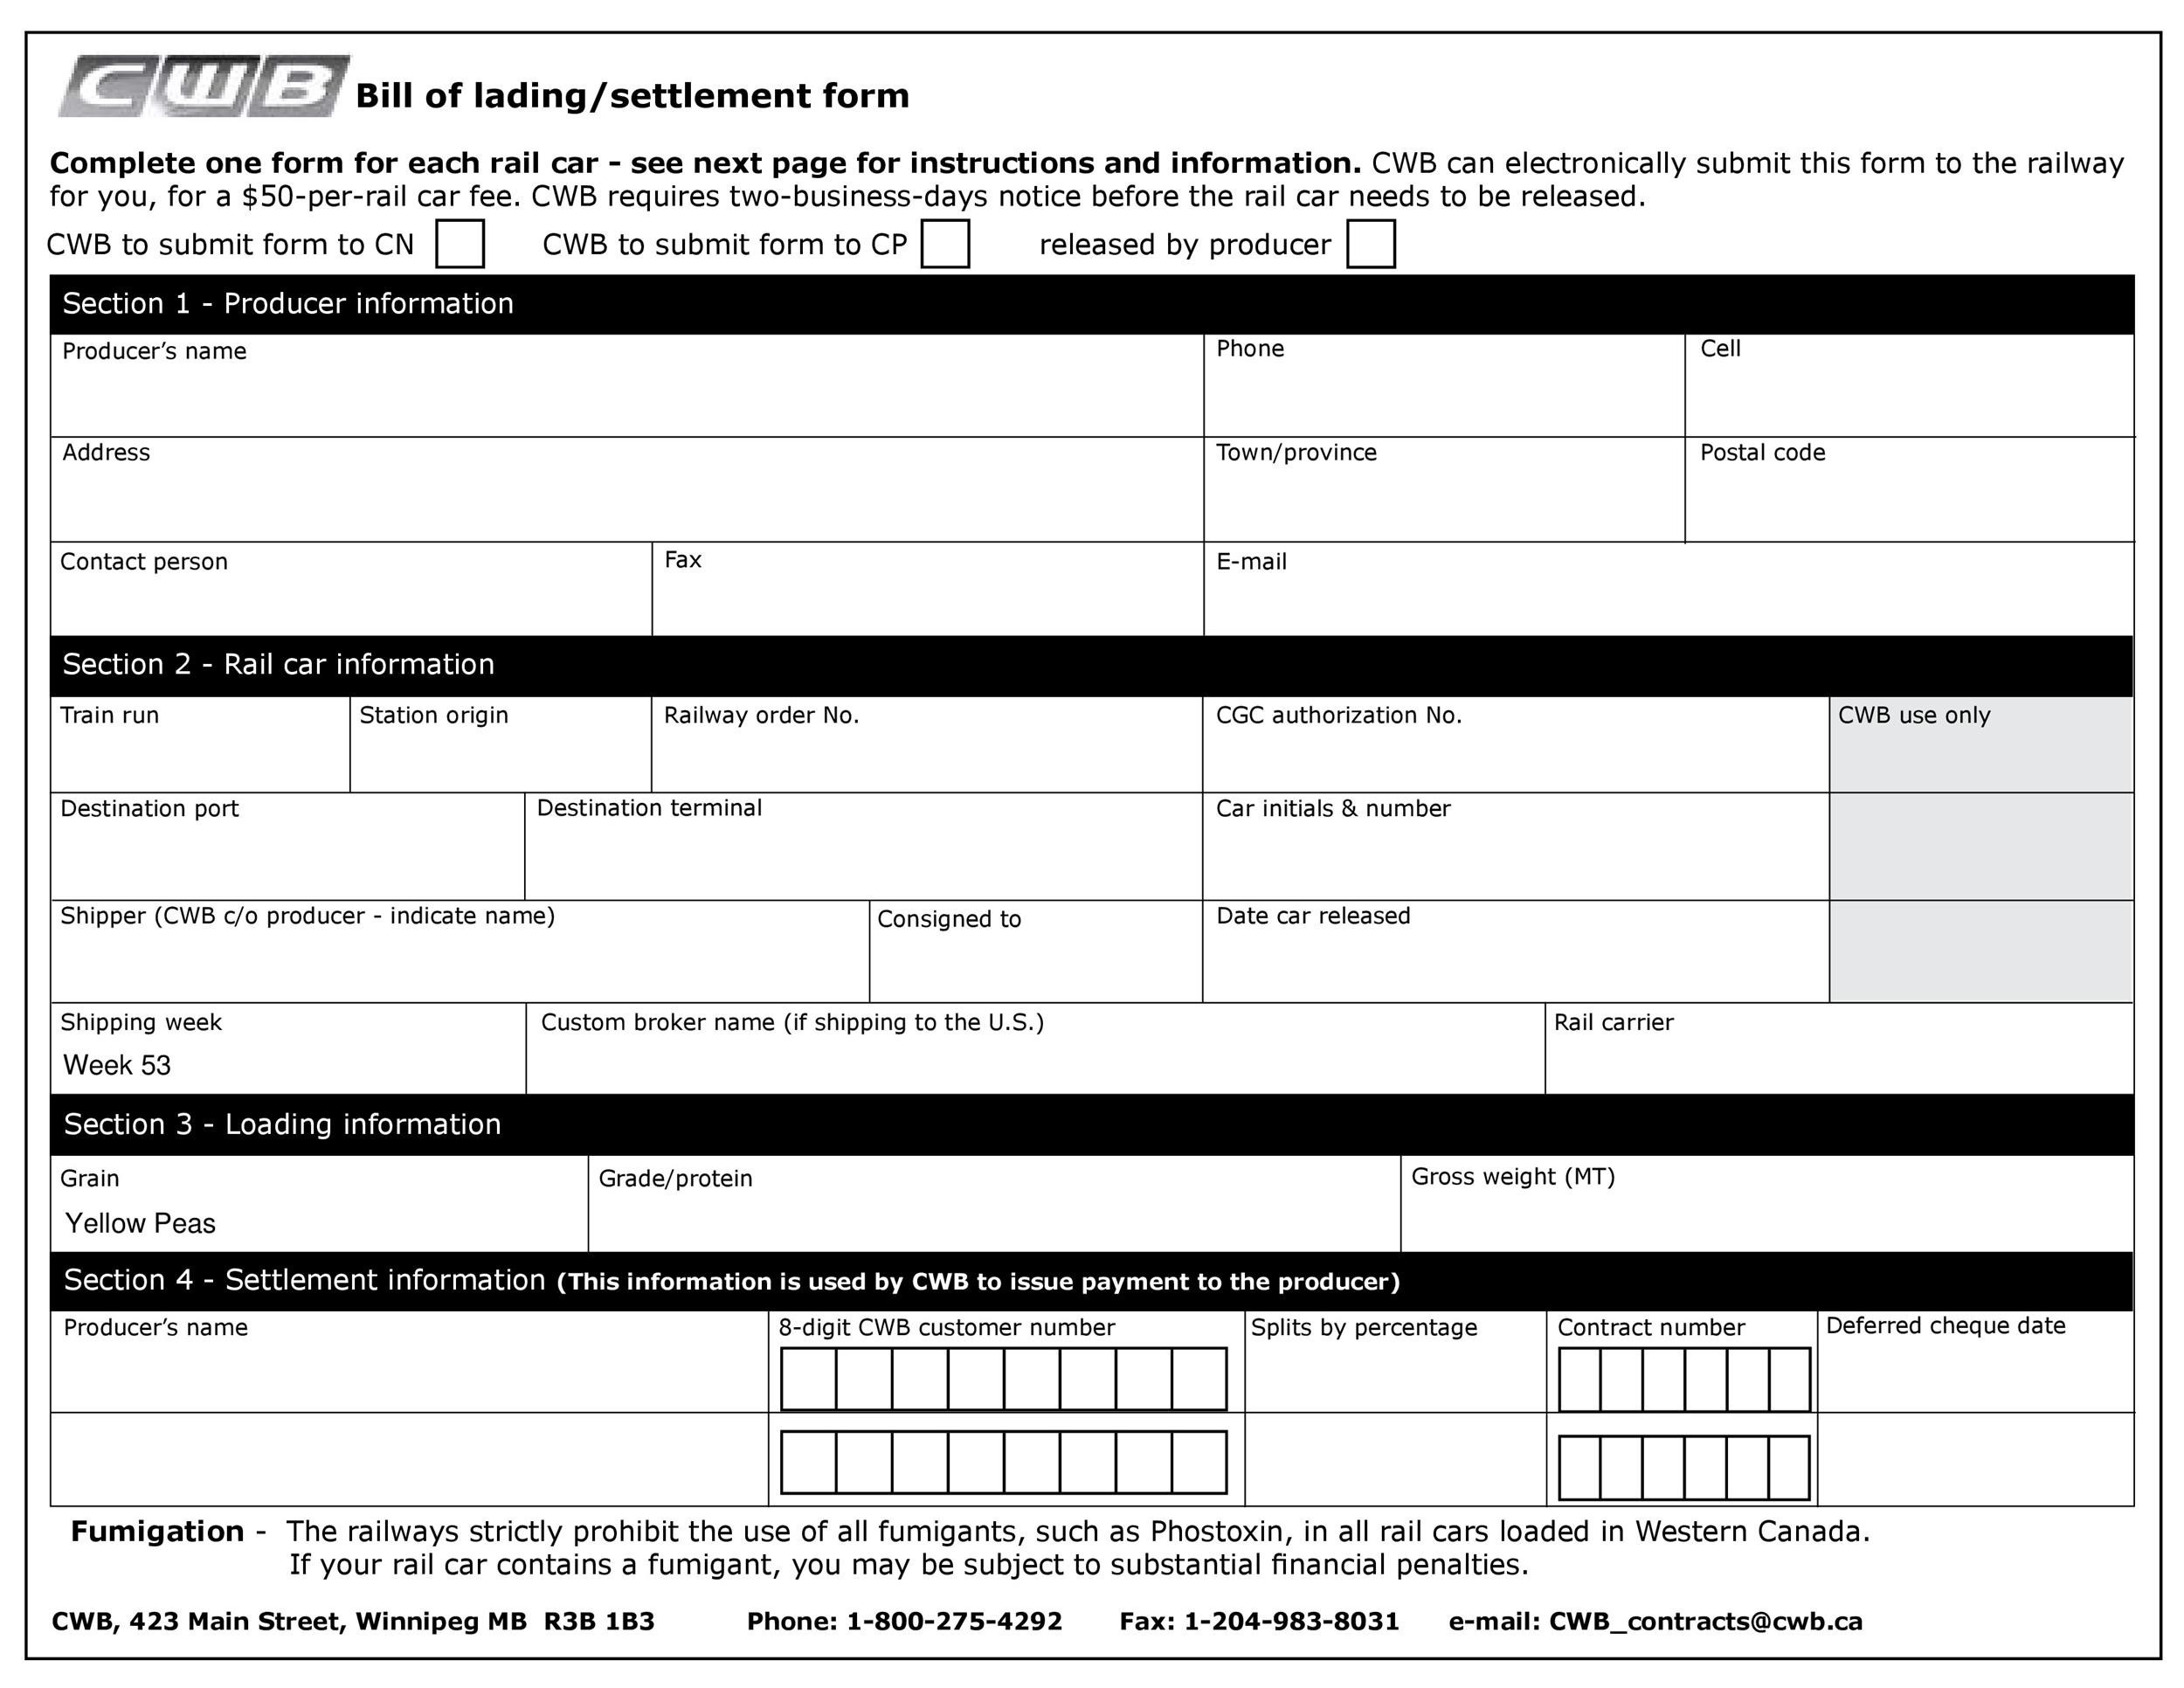 40 Free Bill of Lading Forms  Templates - Template Lab - bill of lading template excel